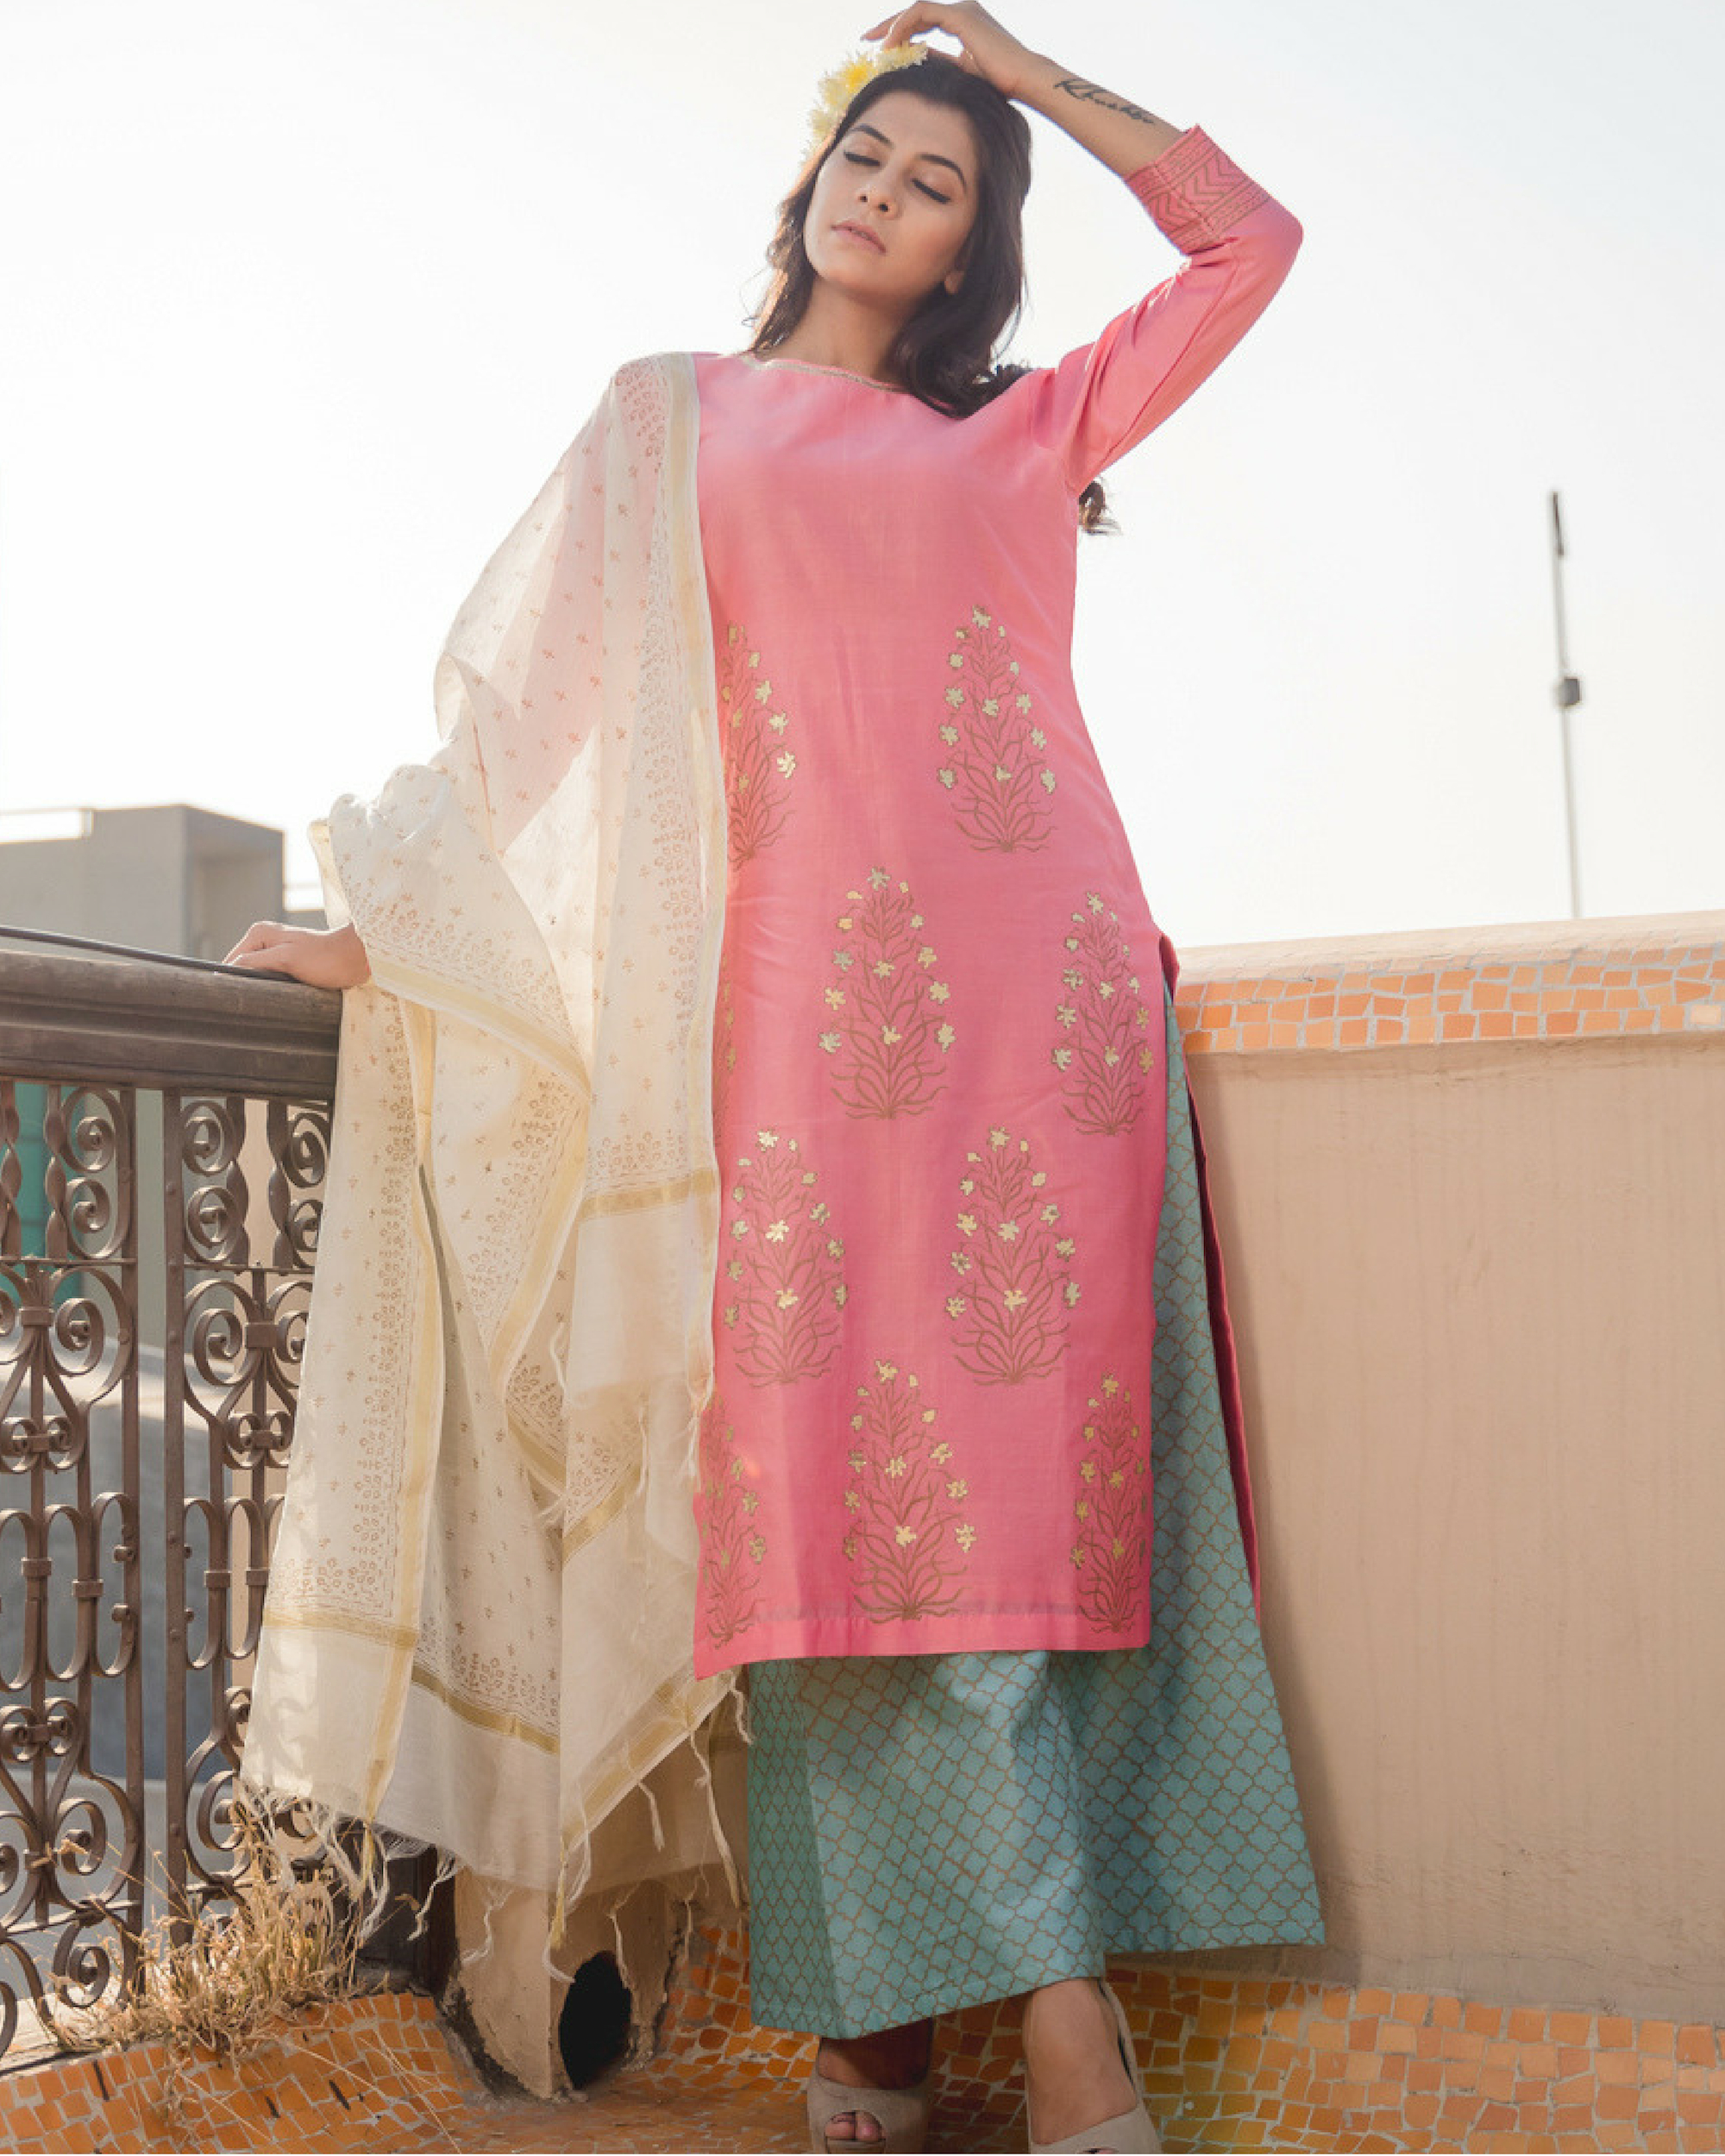 Chanderi mustaqil phool set with dupatta